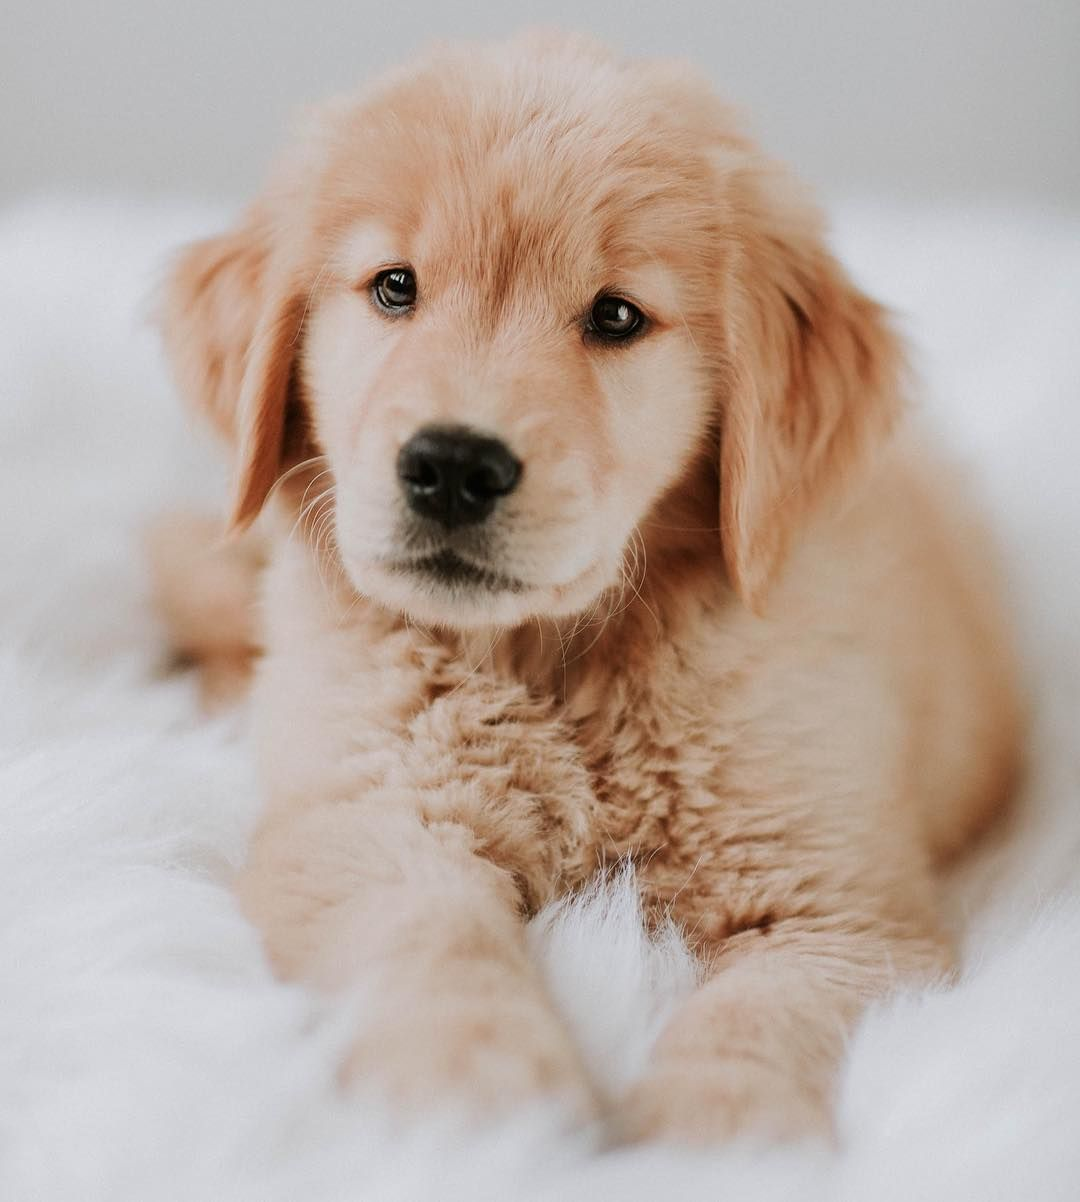 Rufio The Golden Retriever On Instagram Happy Nationalpuppyday Mom Has This Photo Of Me On The Wall Bc She Can T Resi Golden Retriever Puppy Eyes Puppies